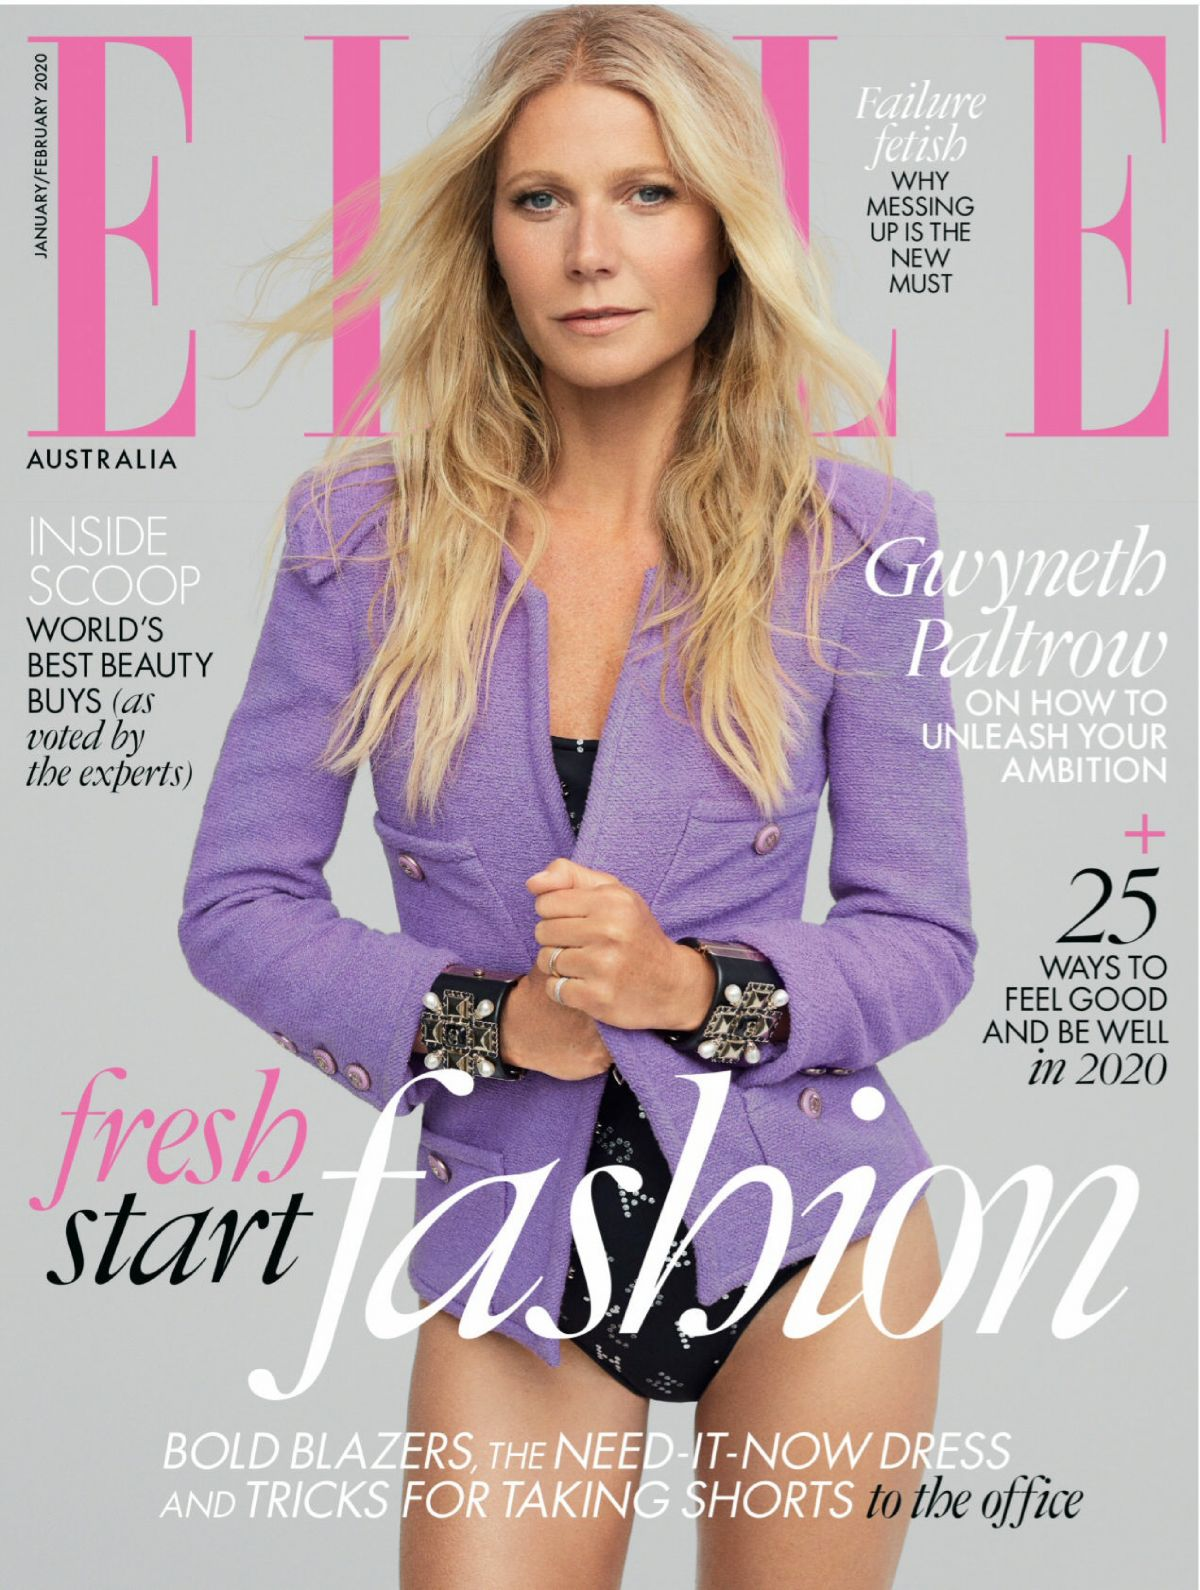 Gwyneth Paltrow in Elle Magazine Australia - January / February 2020